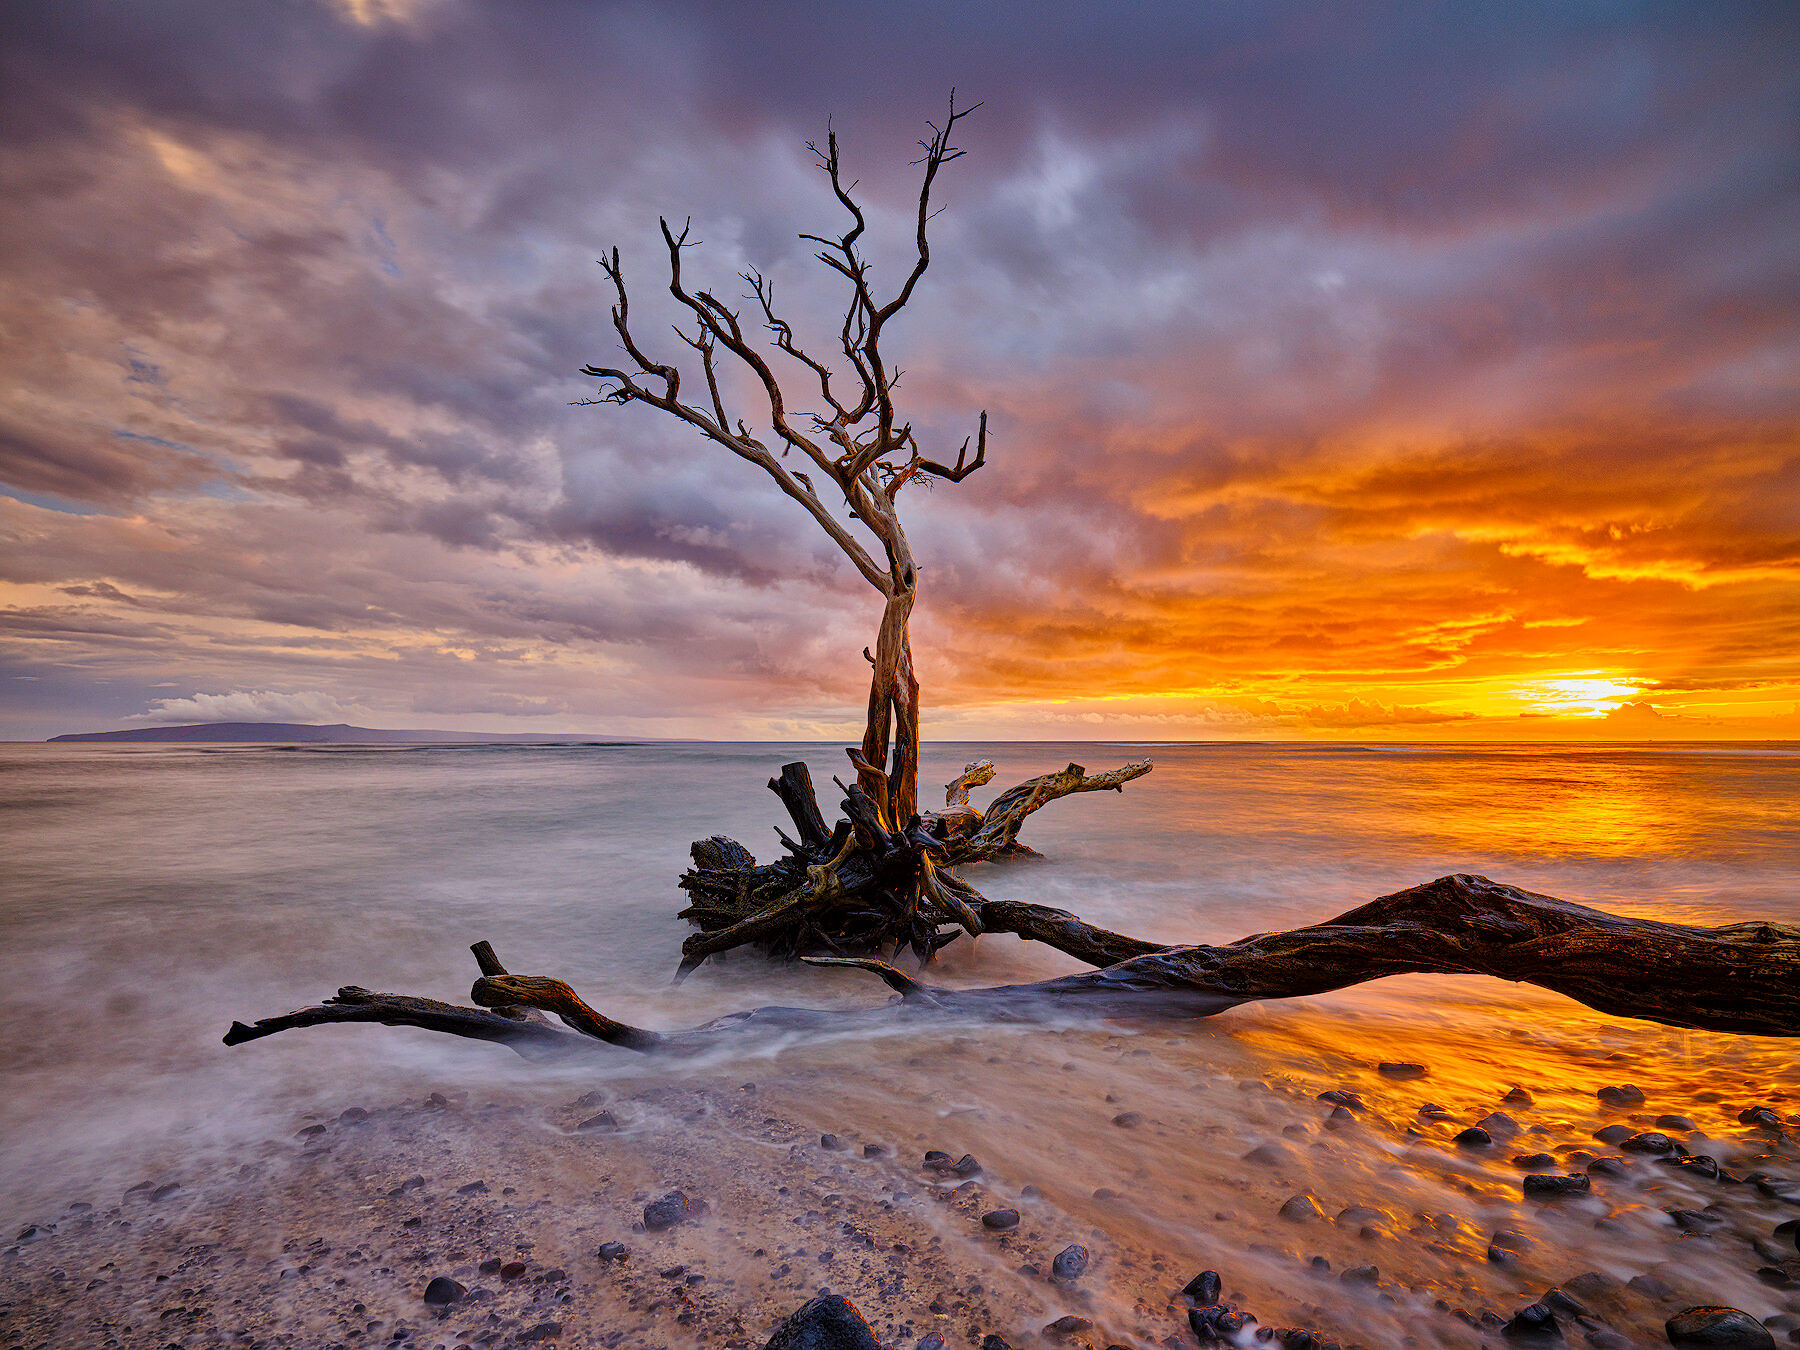 a lone keawe tree along the beach at Ukumehame on the island of Maui makes for a dramatic subject at sunset